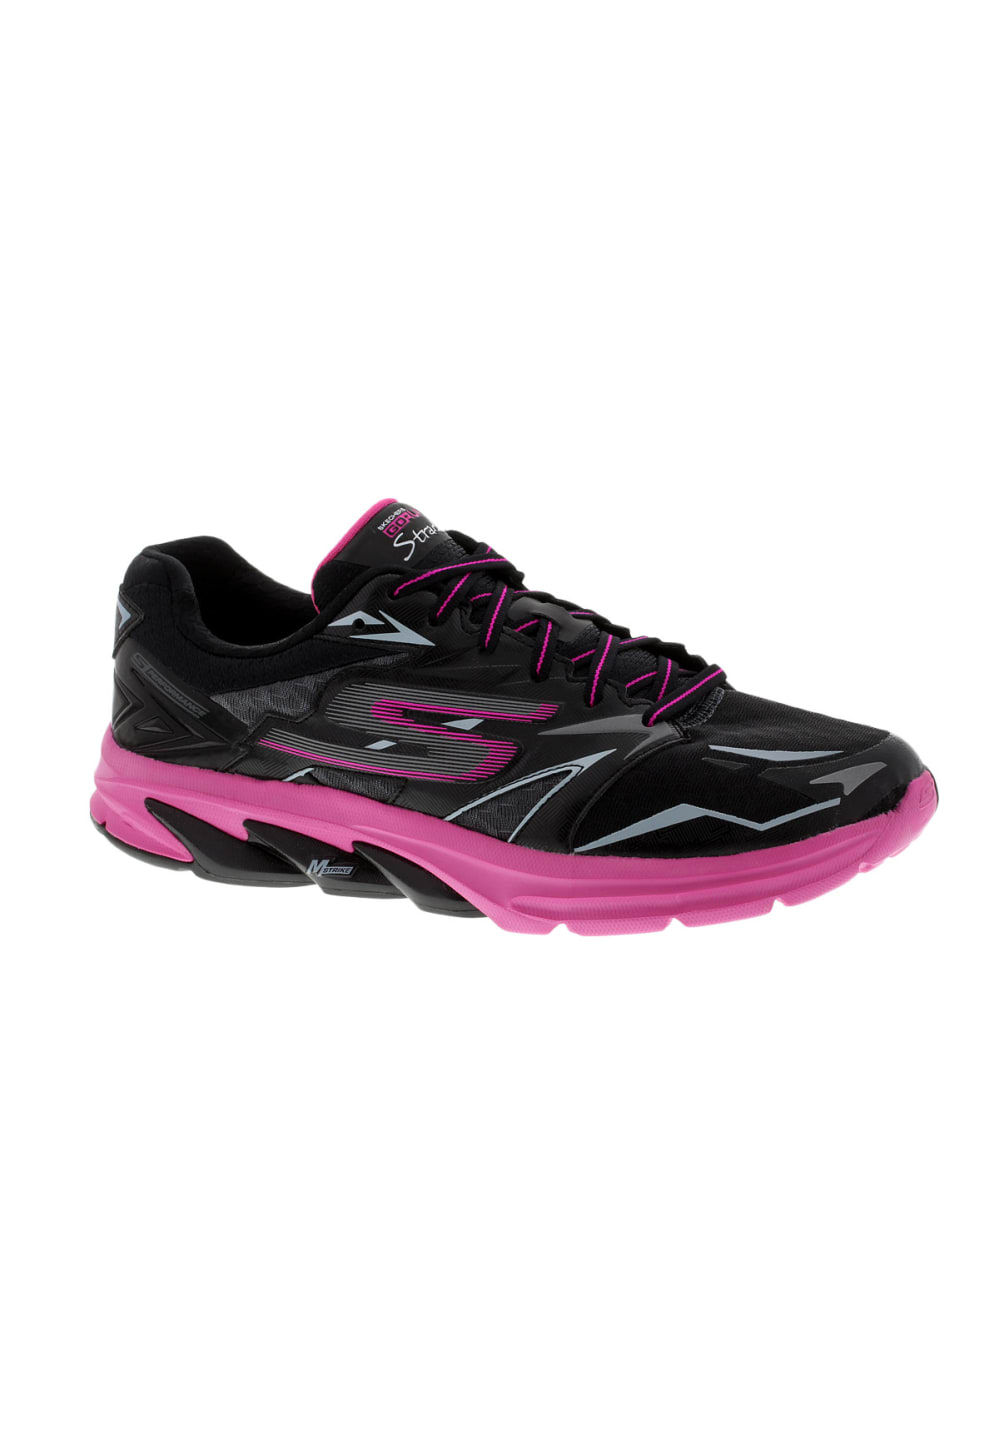 c061bf135 Skechers Go Run Strada - Running shoes for Women - Black | 21RUN